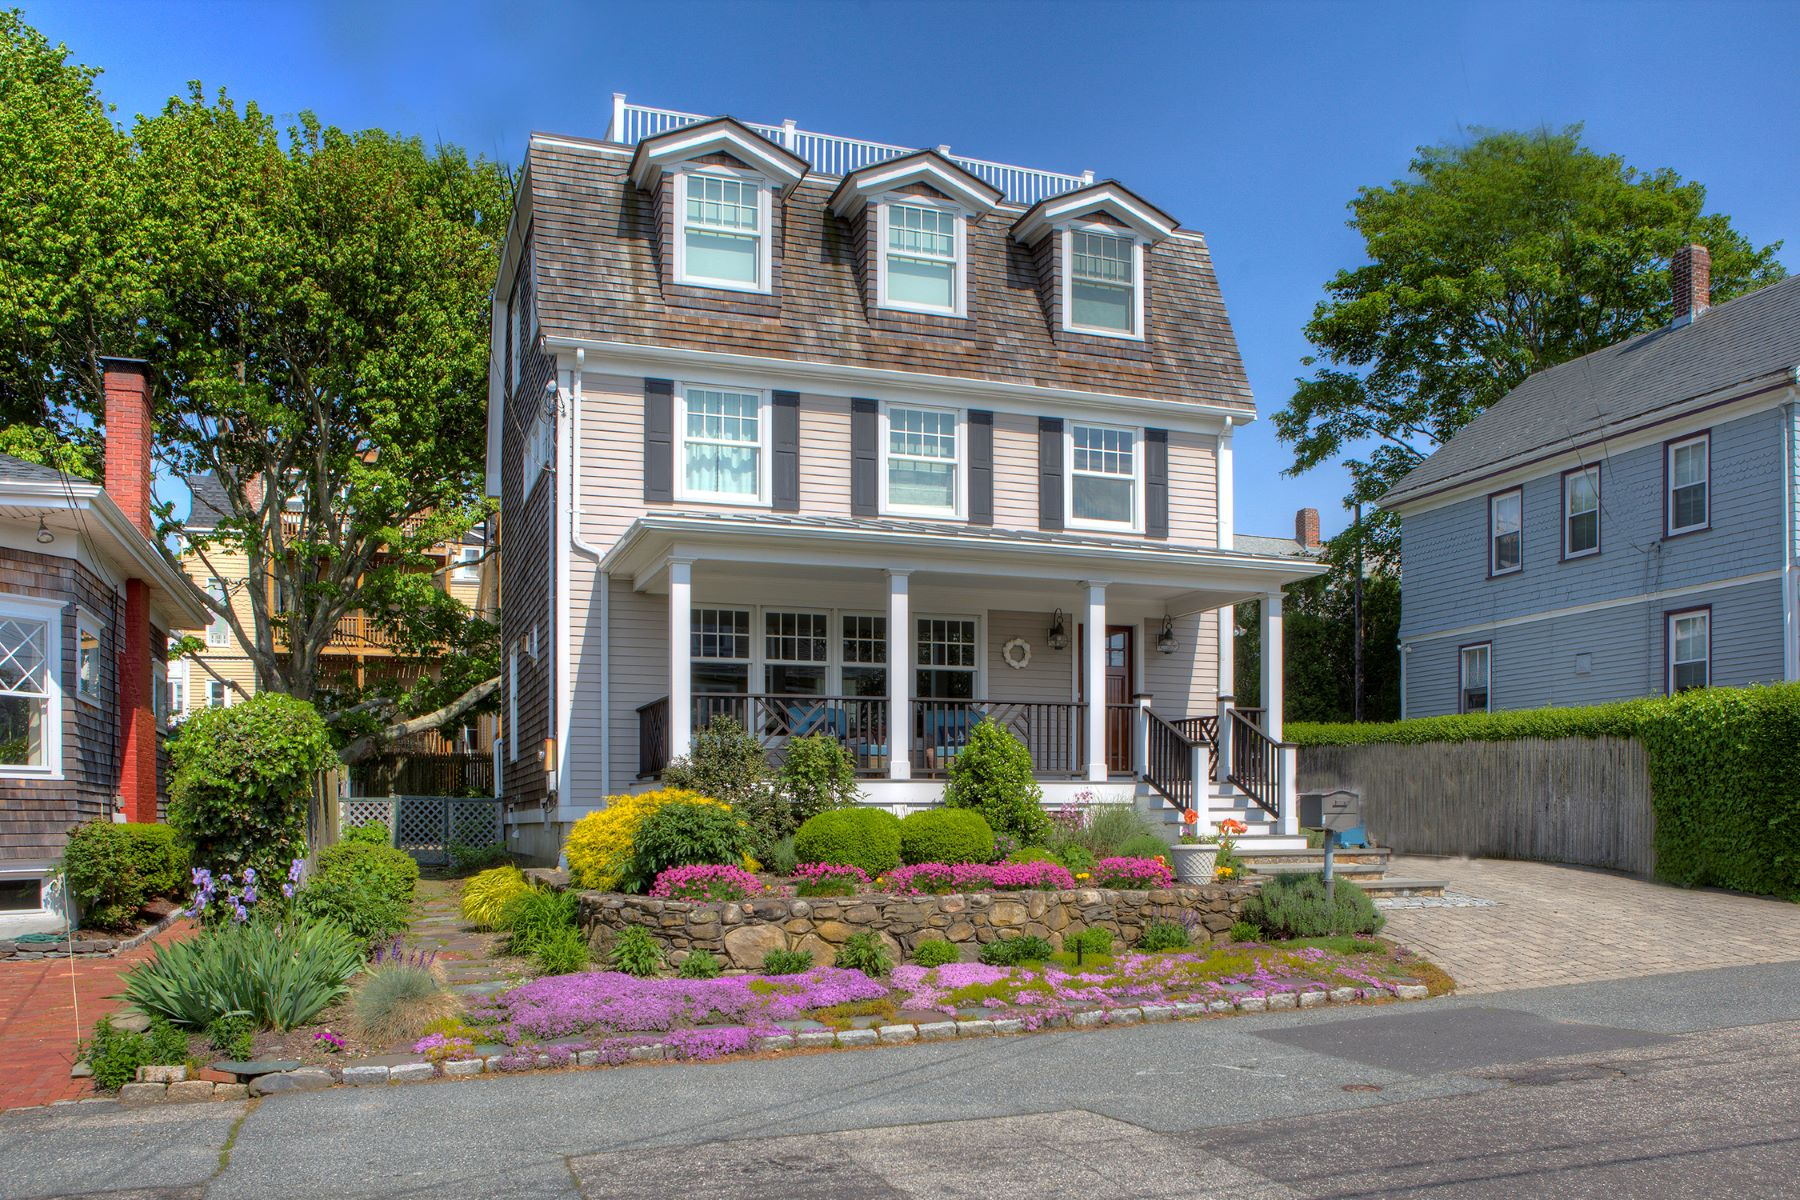 Single Family Homes for Sale at Jewel on The Point 13 Bayside Avenue Newport, Rhode Island 02840 United States